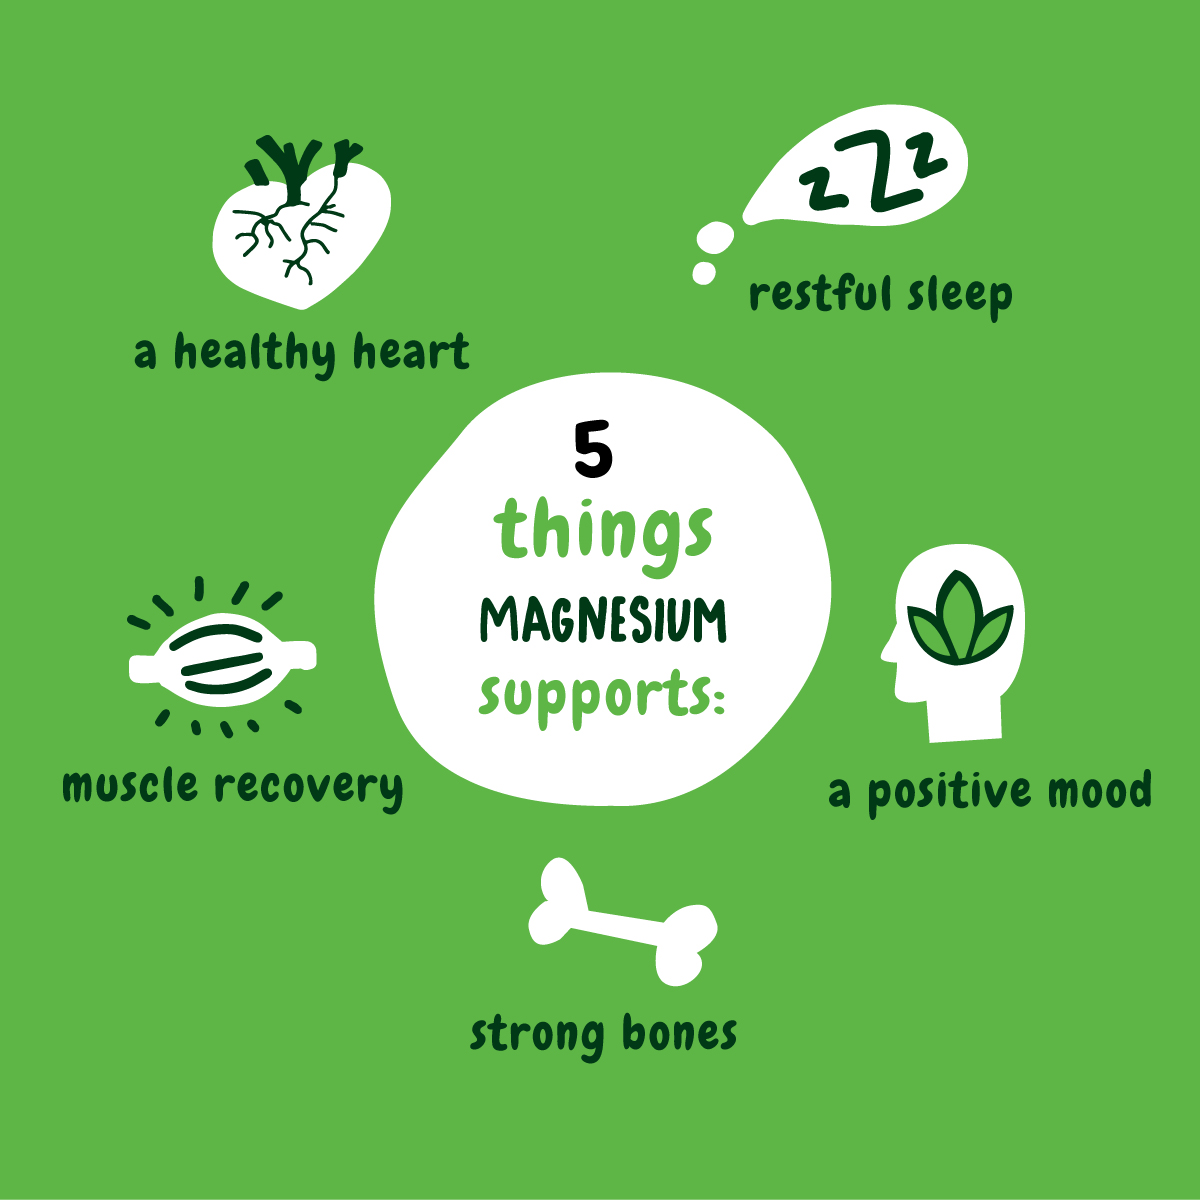 Many people don't realize how crucial magnesium is for the body to function.  Magnesium is an MVP mineral with 300+ jobs in the body, and cardio function , brain function , immune system function , and mood  are some of the big ones.  Learn more:  https://www. purityproducts.com/magblue-reasons    <br>http://pic.twitter.com/xEgW53Awzn